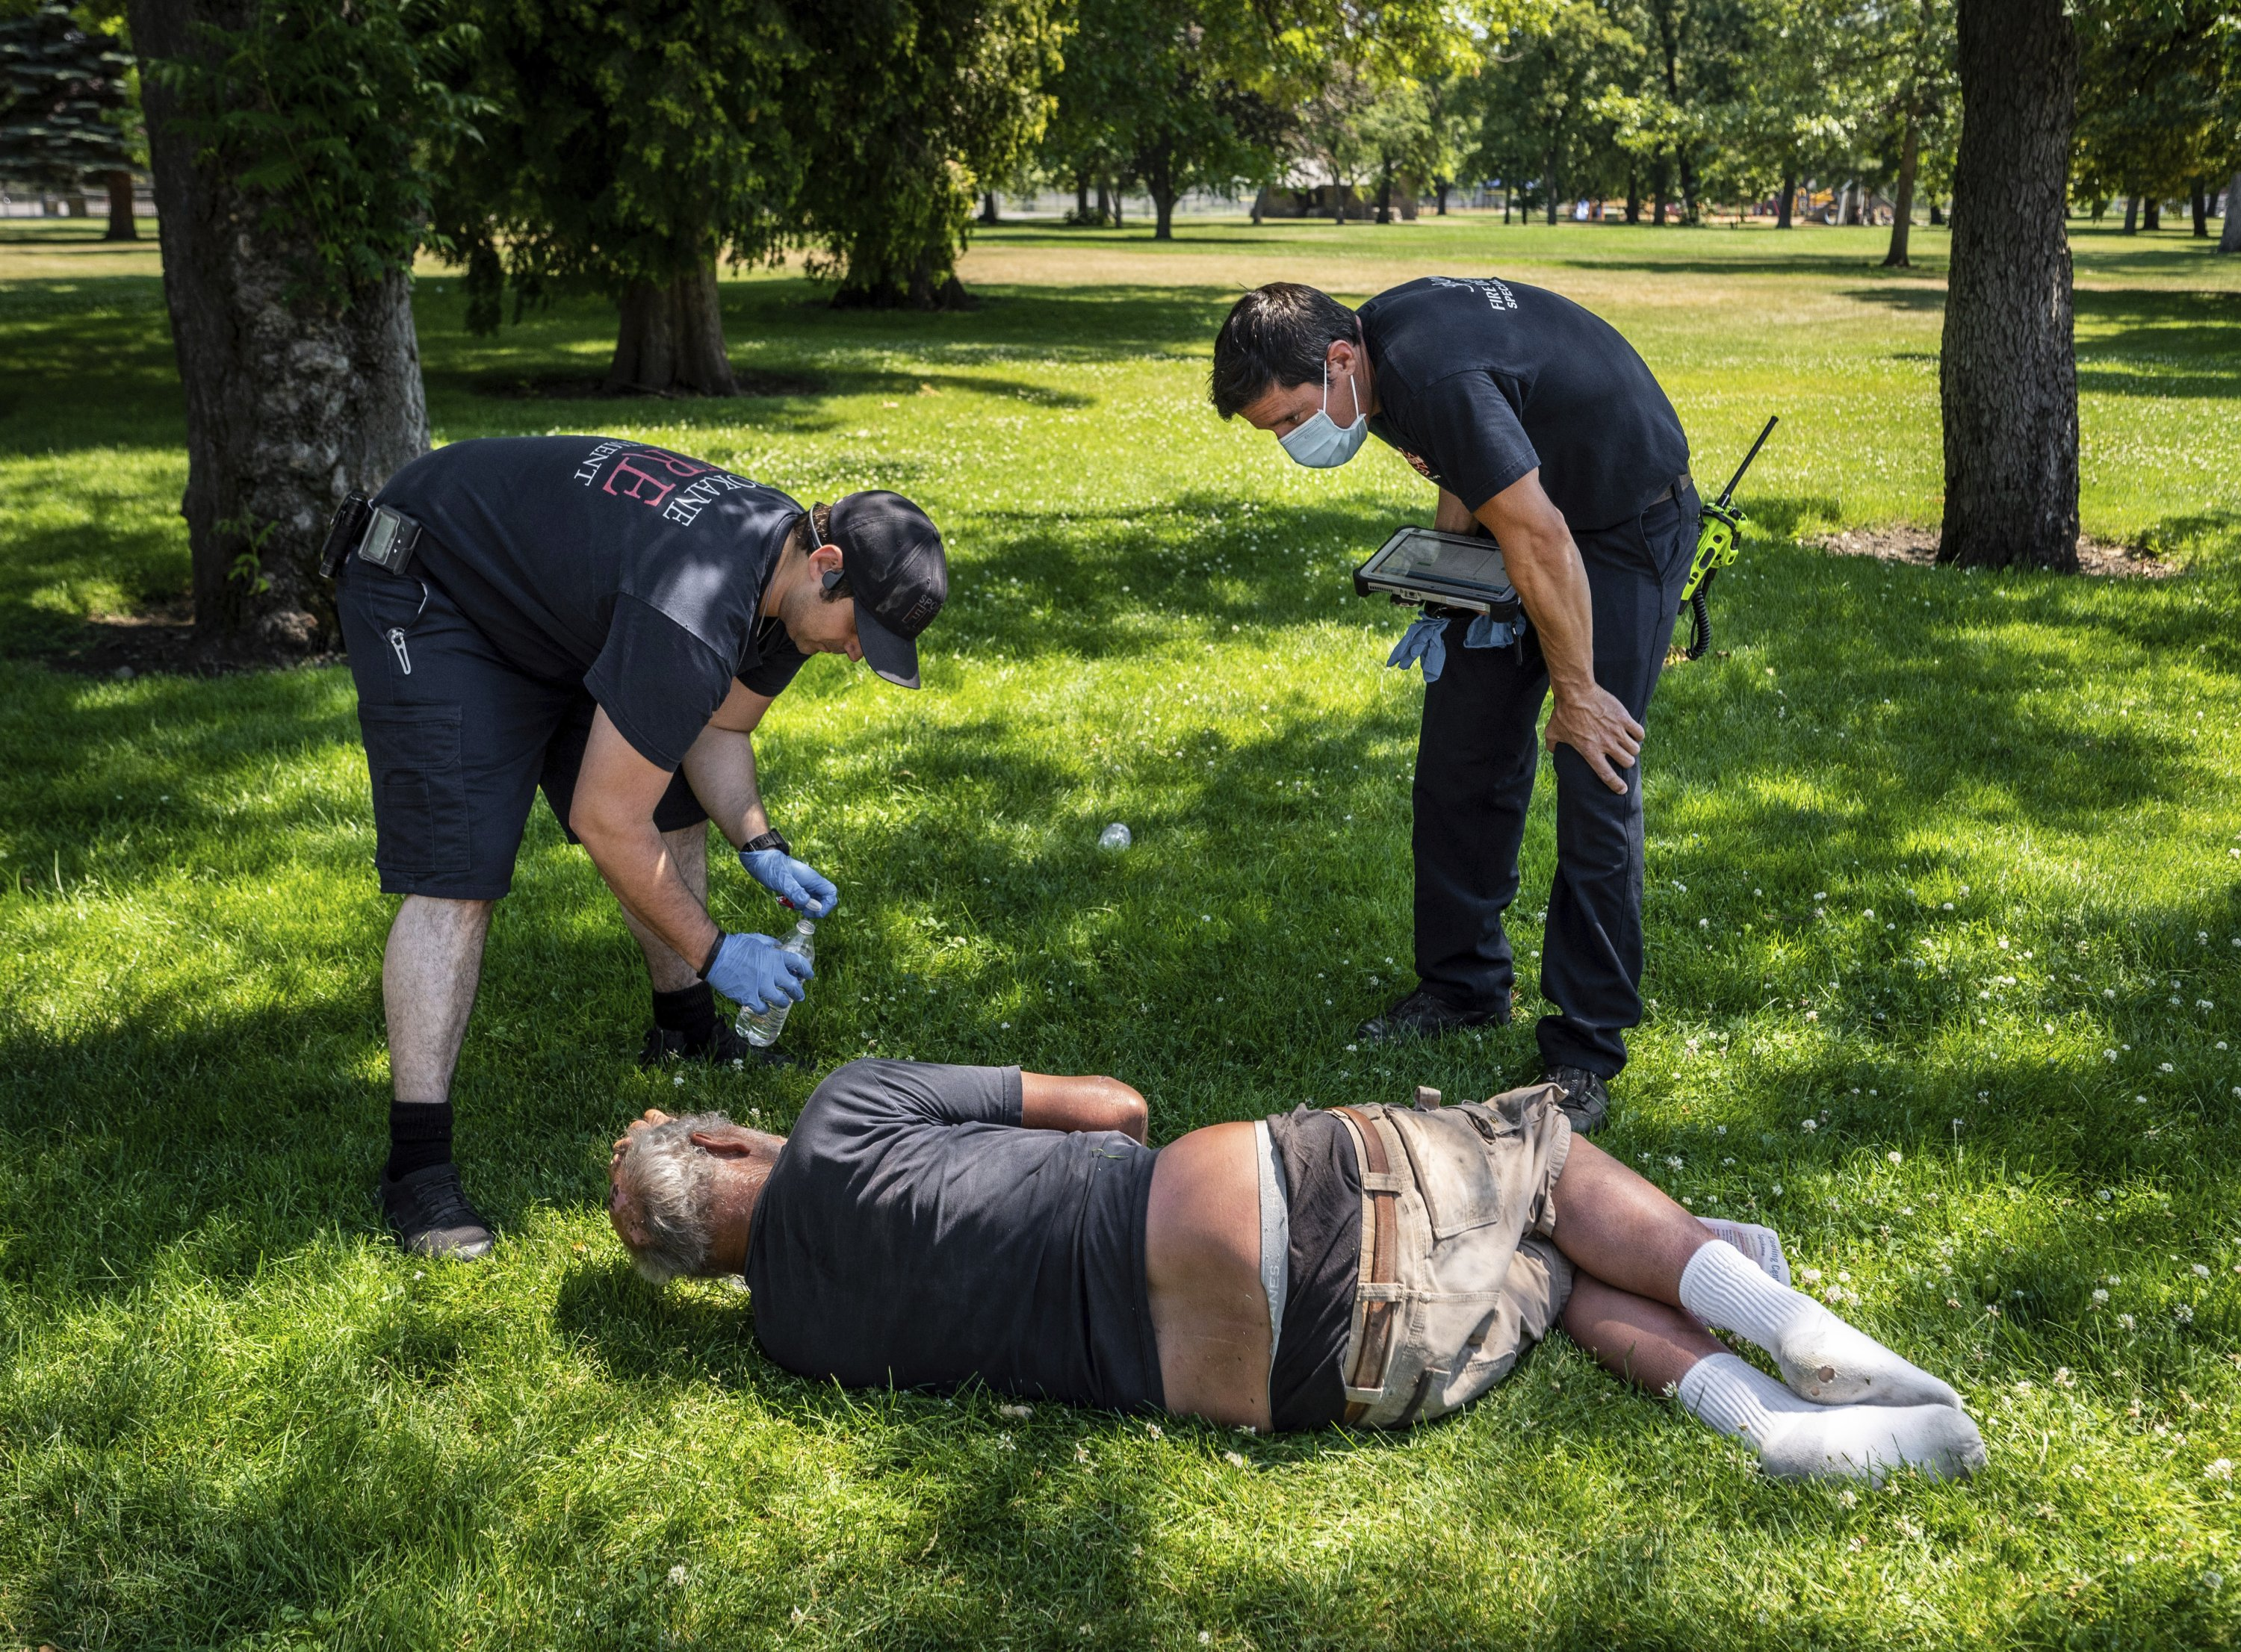 With the temperature well over 100 degrees, Spokane, Wash., firefighter Sean Condon, left and Lt. Gabe Mills, assigned to the Alternative Response Unit of of Station 1, check on the welfare of a man in Mission Park in Spokane, Washington, D.C., U.S., June 29, 2021. (AP Photo)